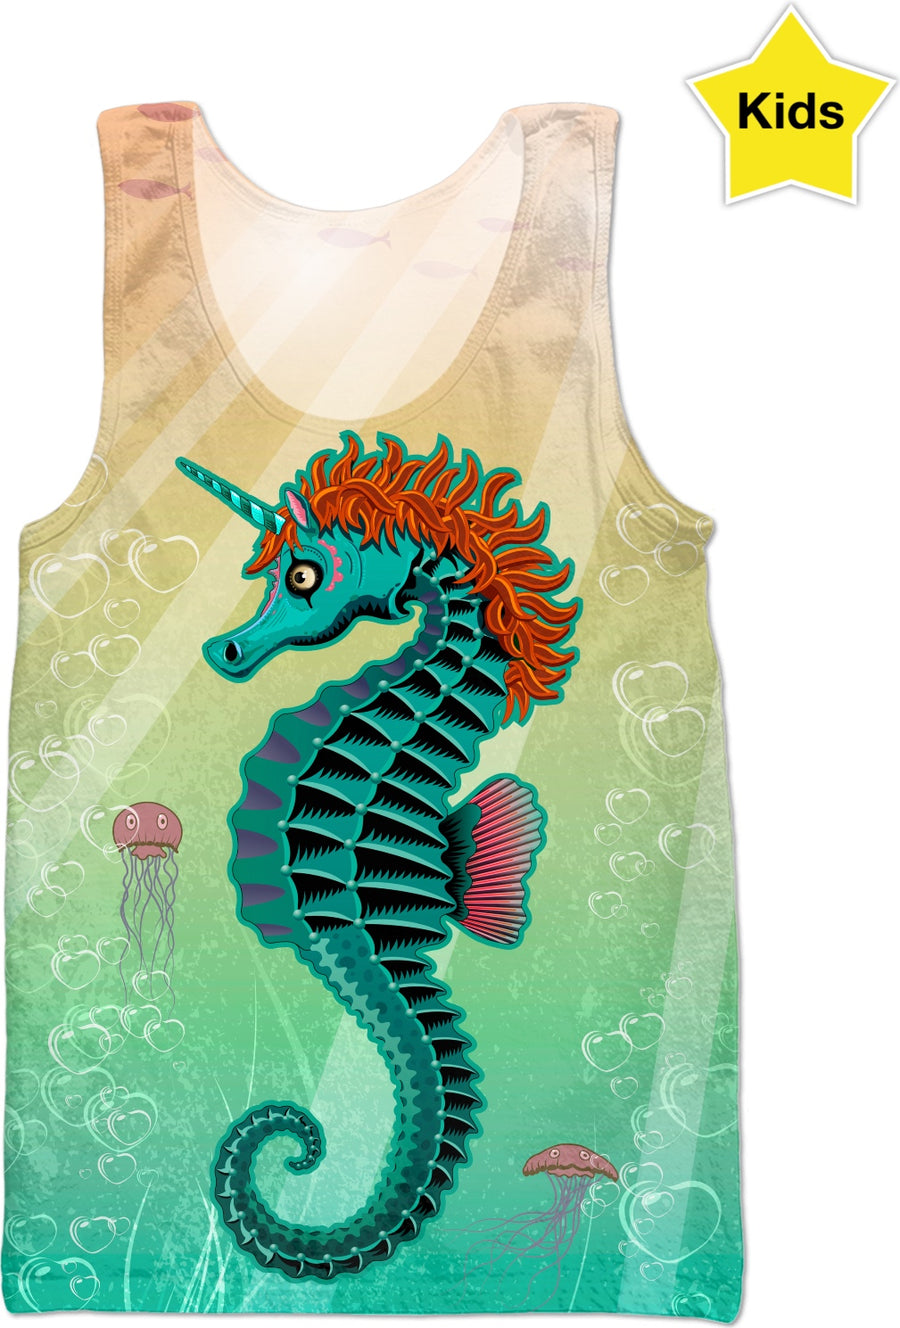 Sea Unicorn Custom Kids Tank Top